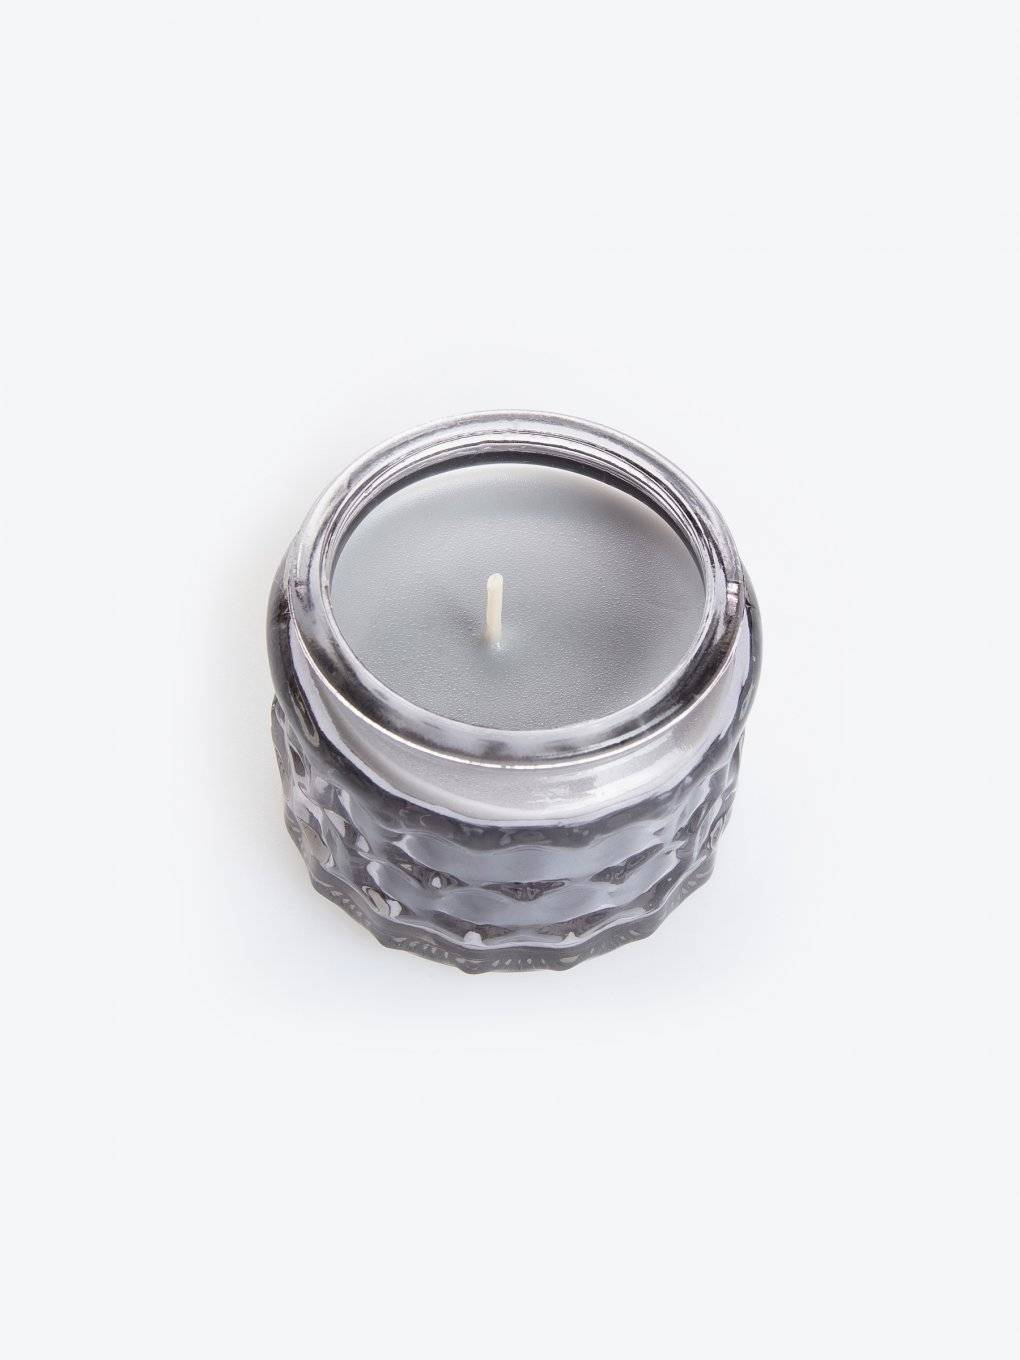 Blackcurrant scented candle